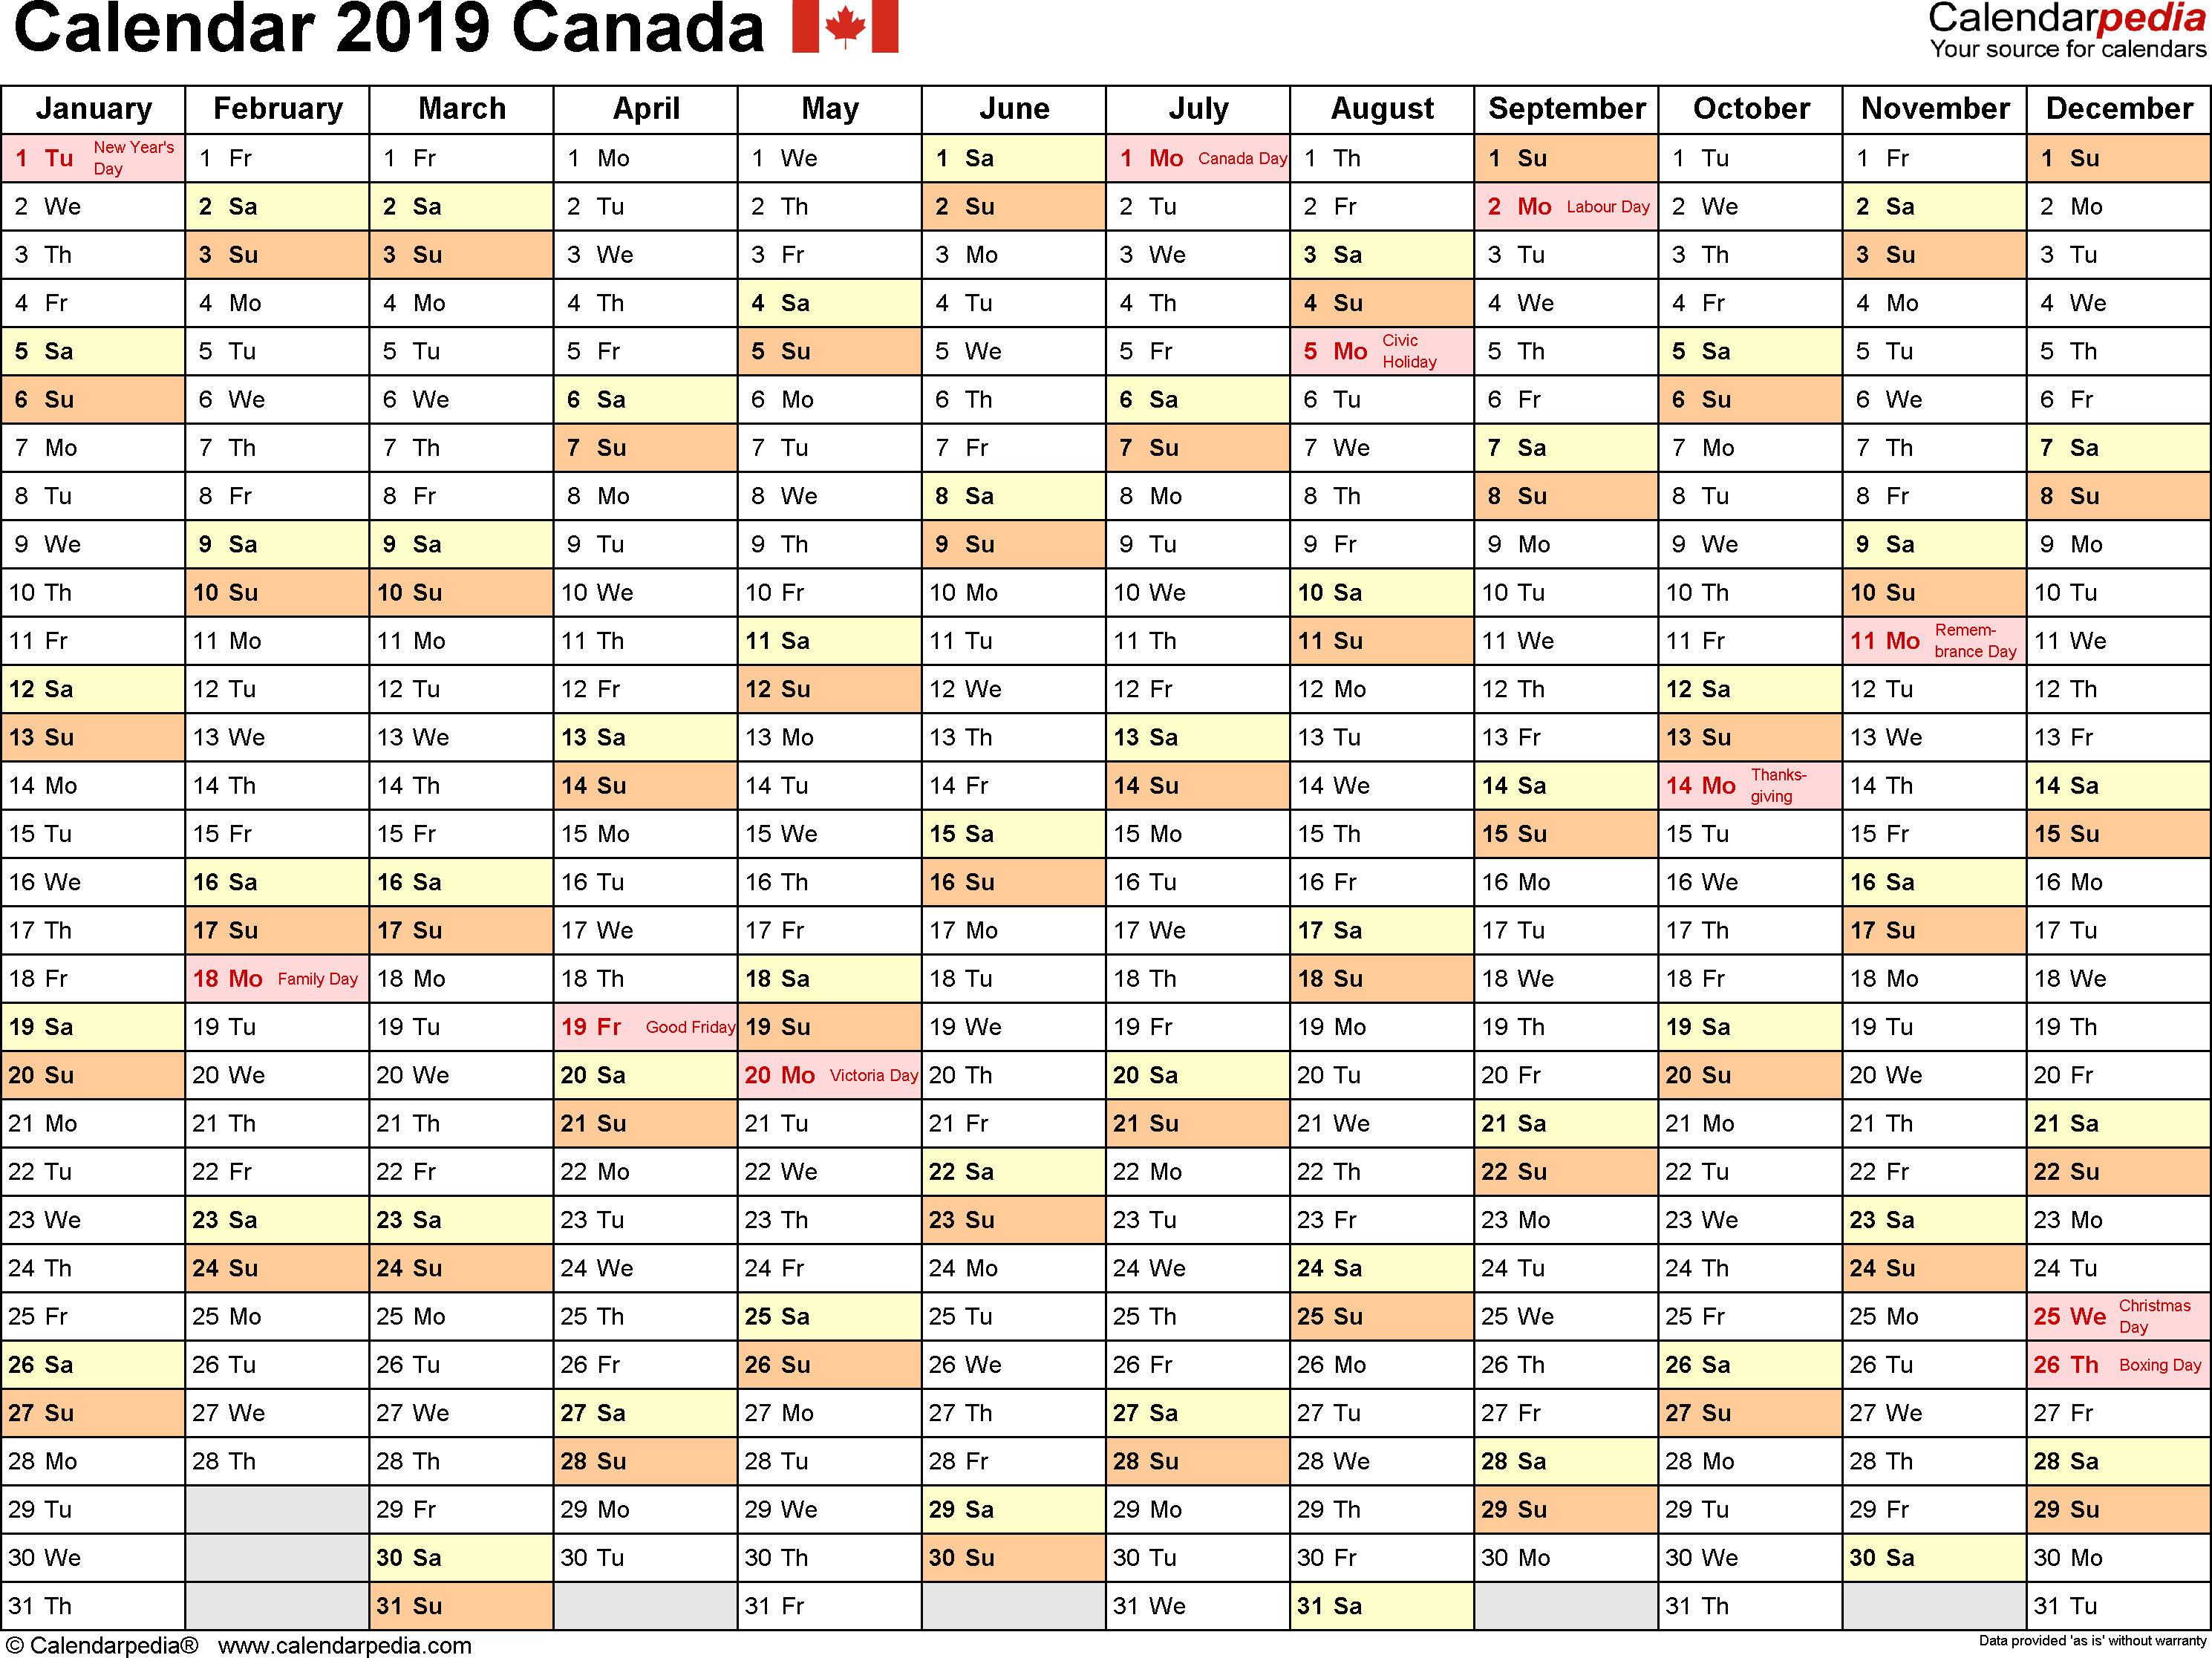 Download Template 2: Calendar 2019 Canada in PDF format, landscape, 1 page